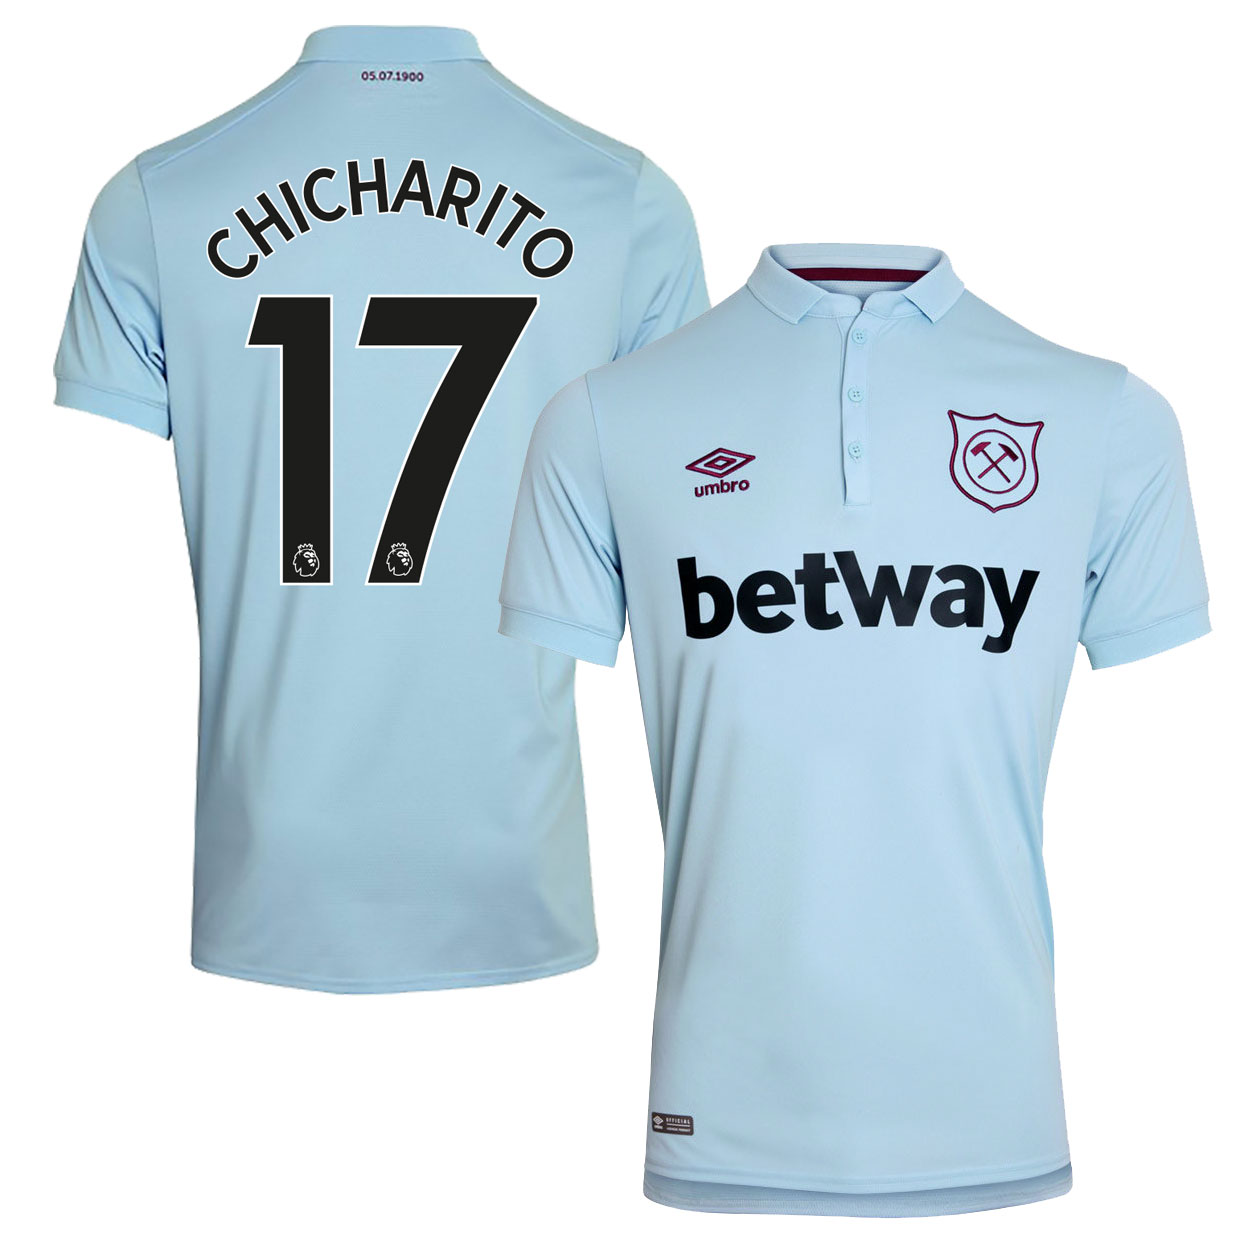 West Ham United 3rd Chicharito Jersey 2017 / 2018 (Authentic EPL Printing) - M